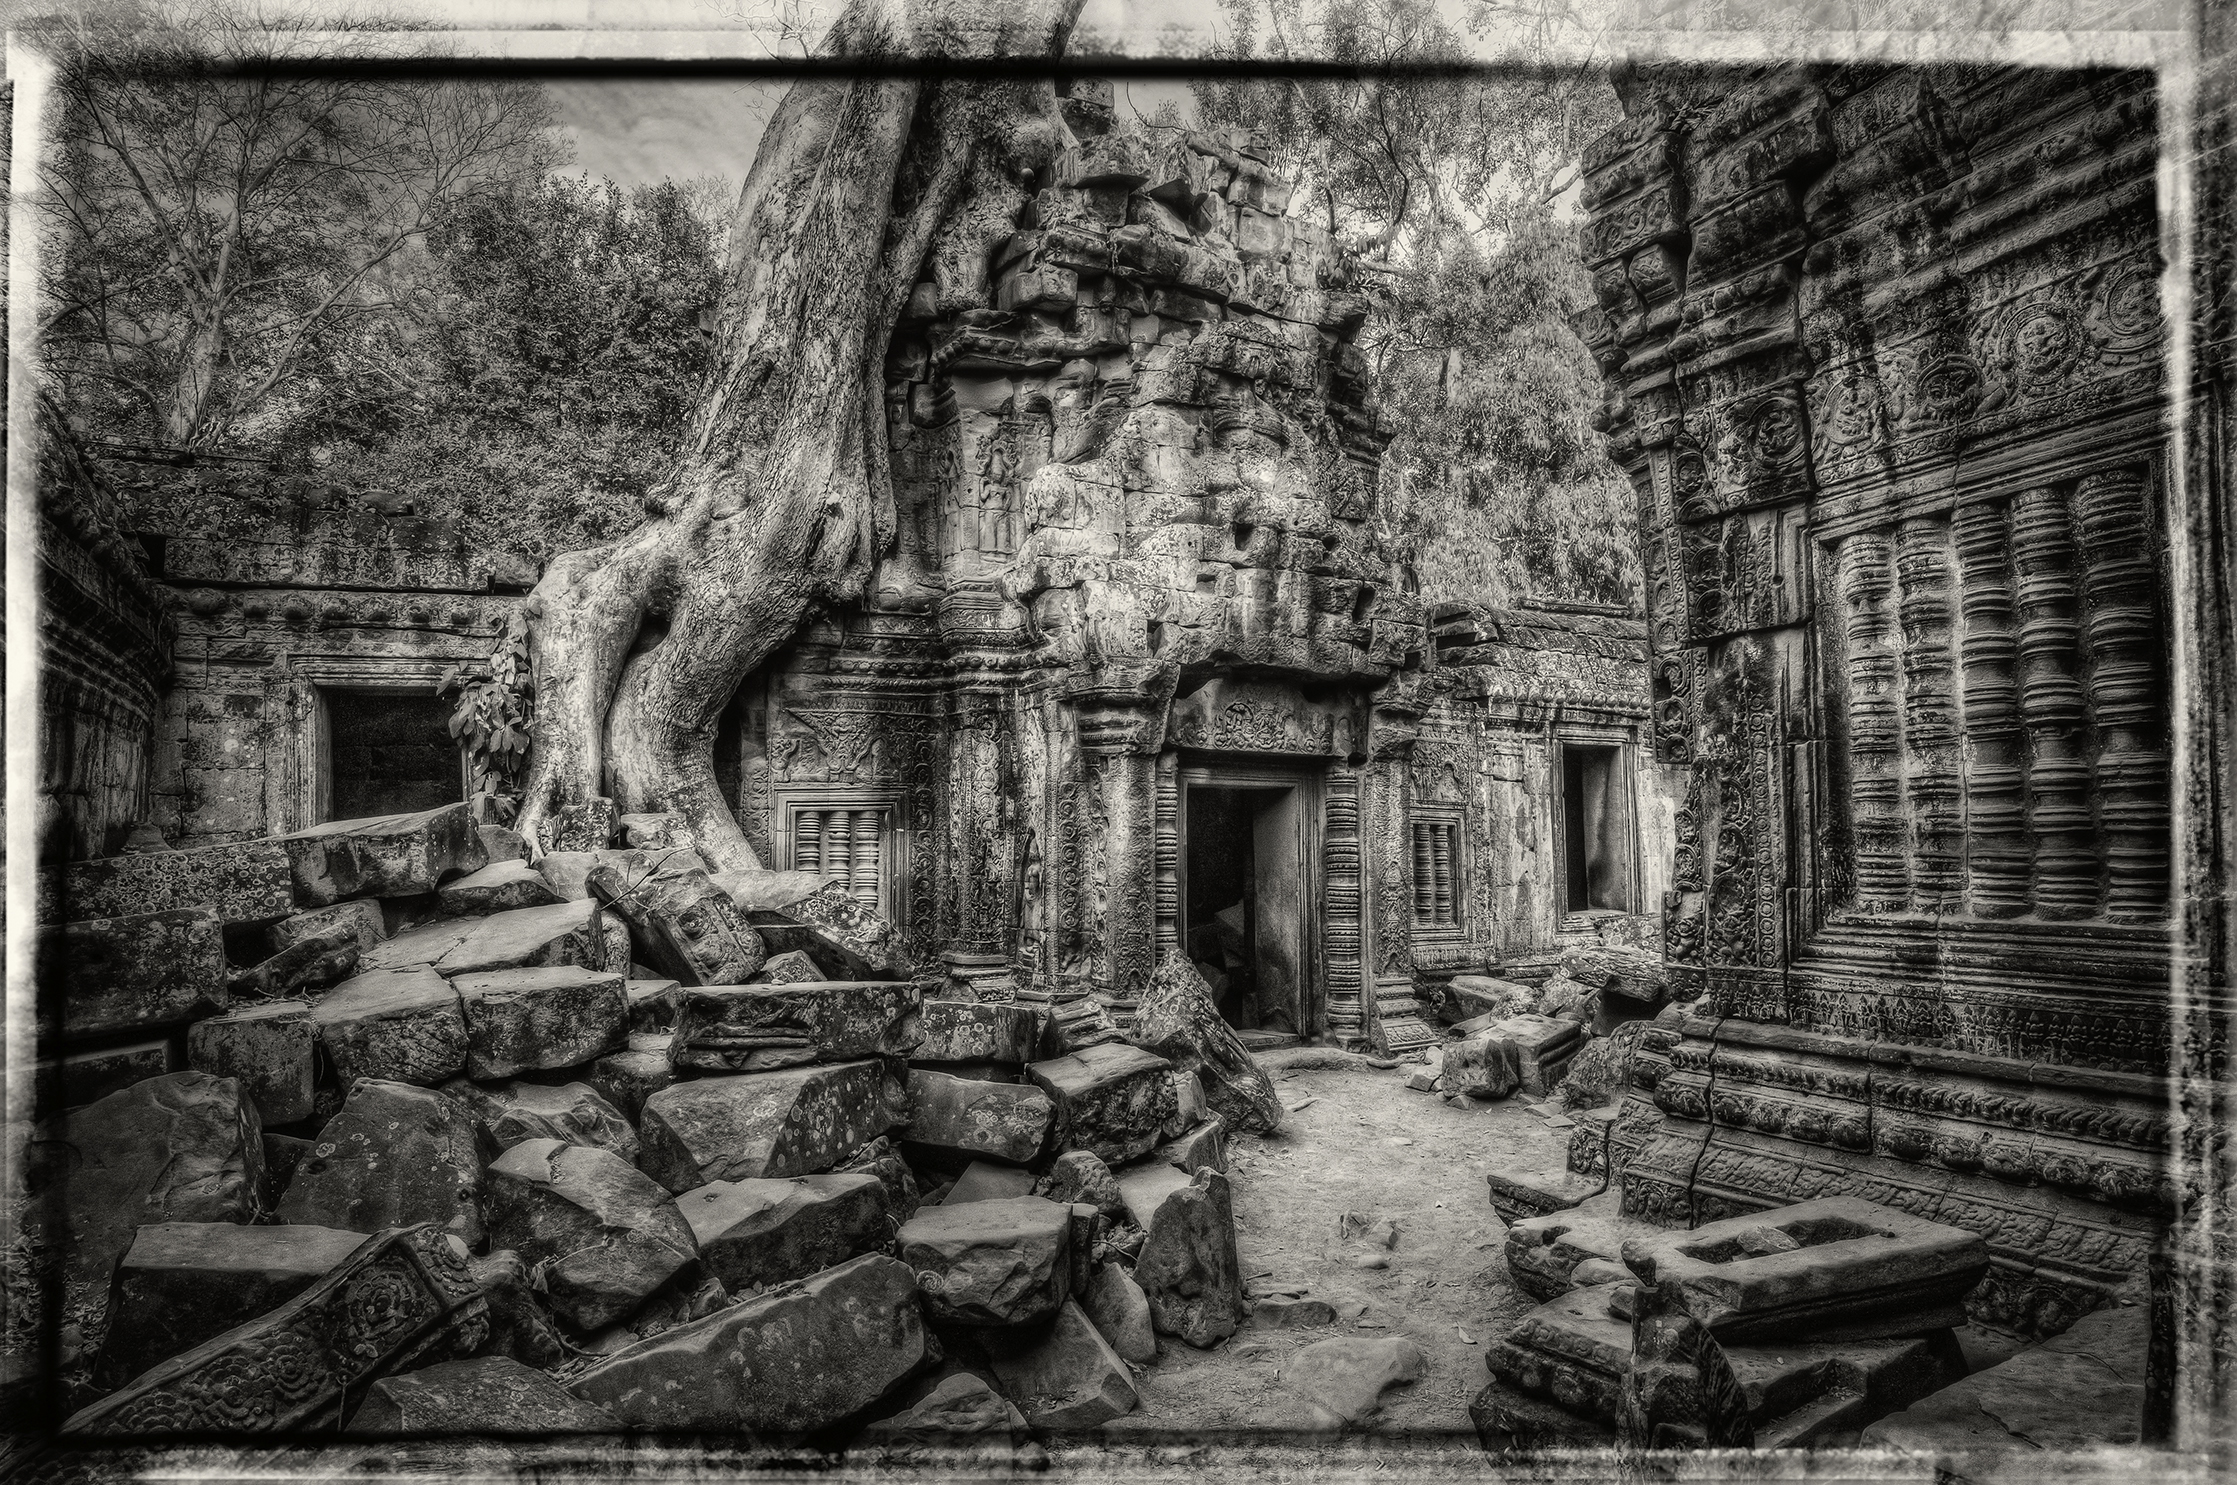 An entry into the Ta Prohm ruin in Cambodia